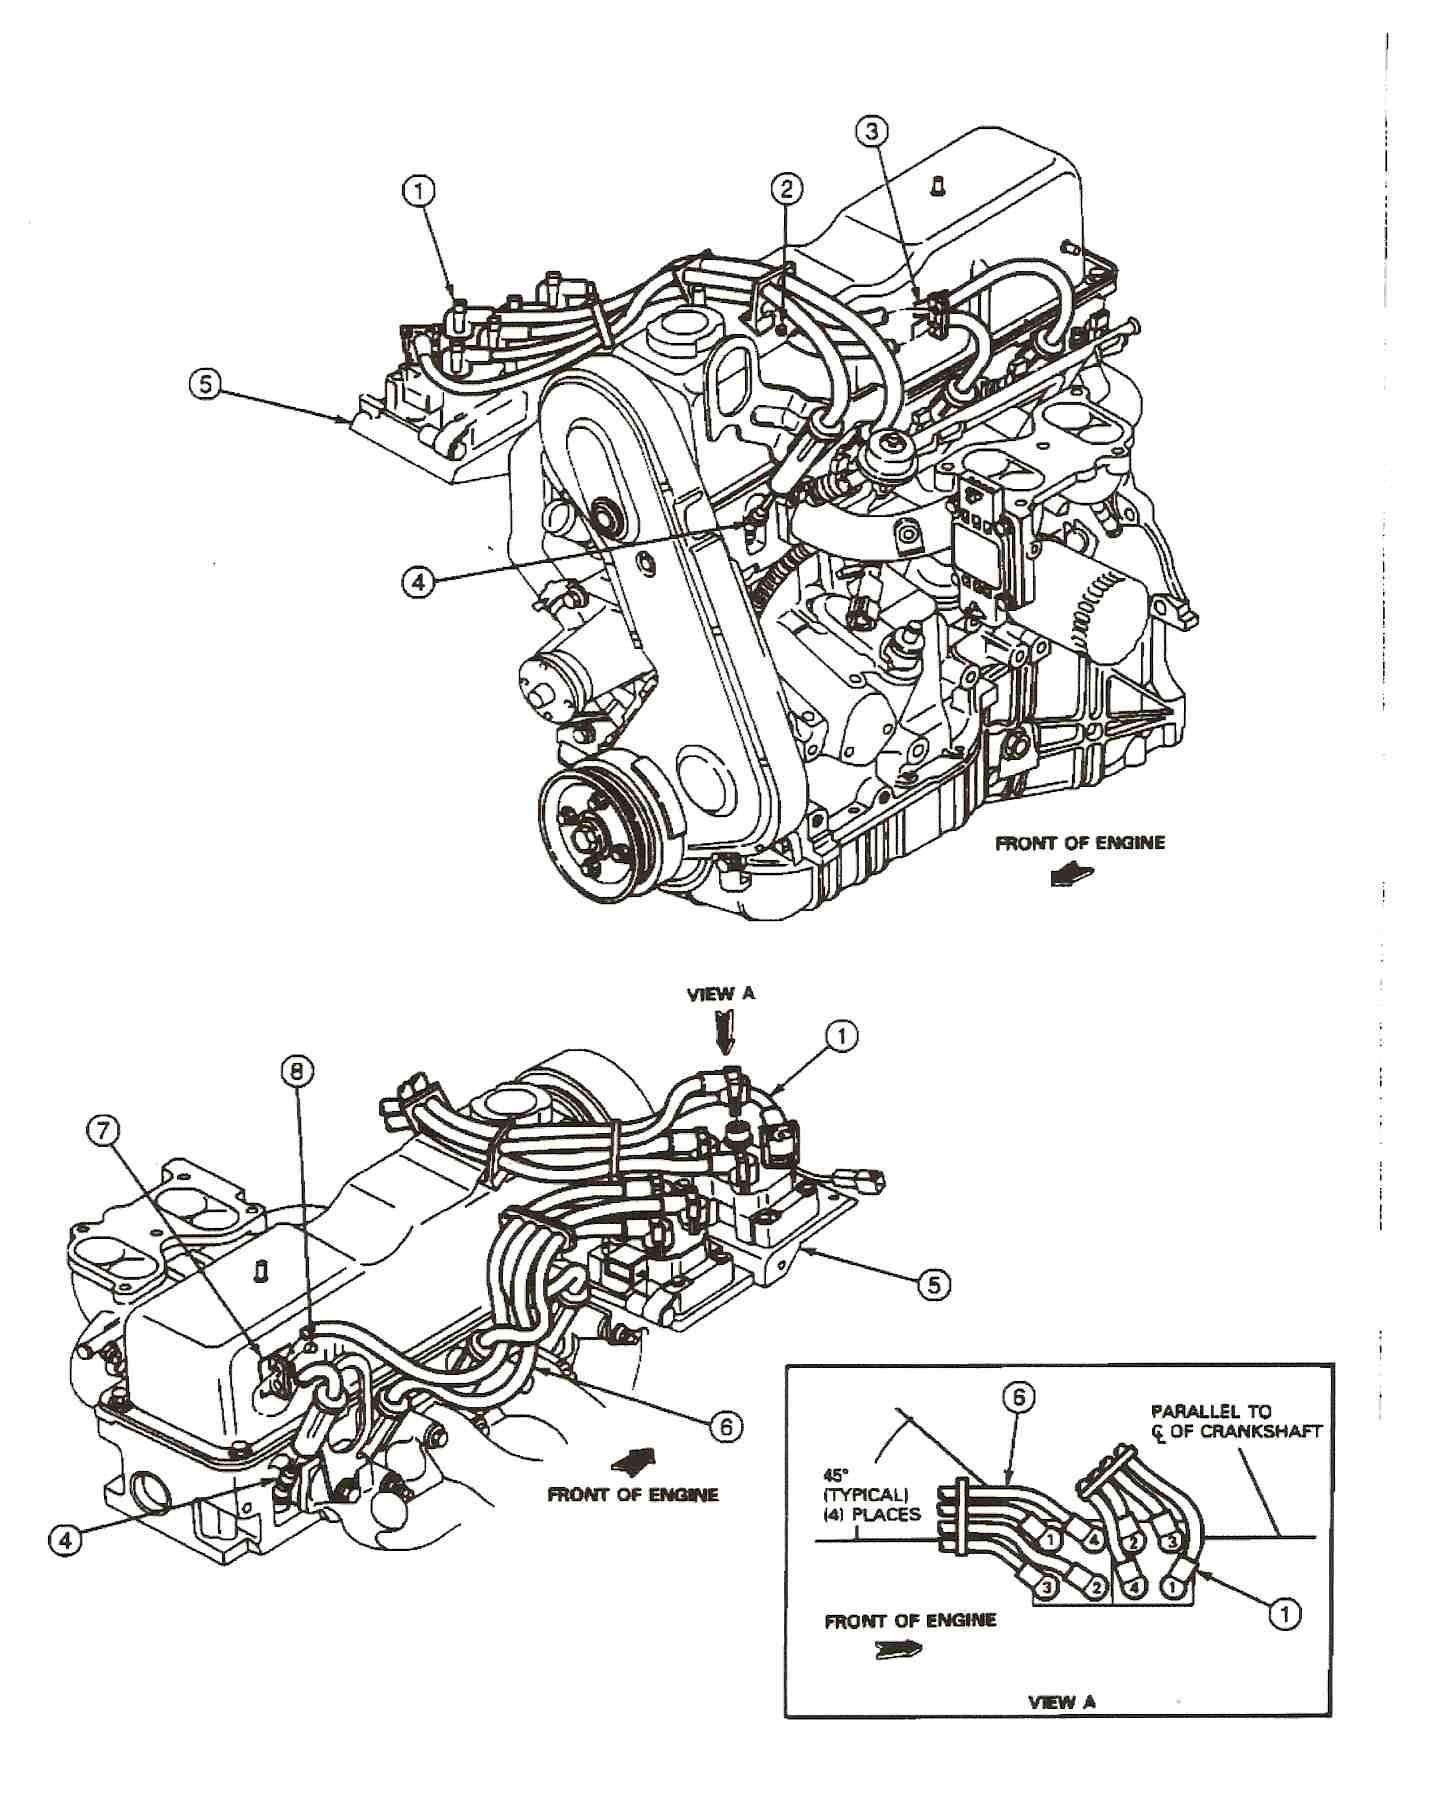 1998 mazda b2500 engine diagram on 2001 mazda b3000 parts